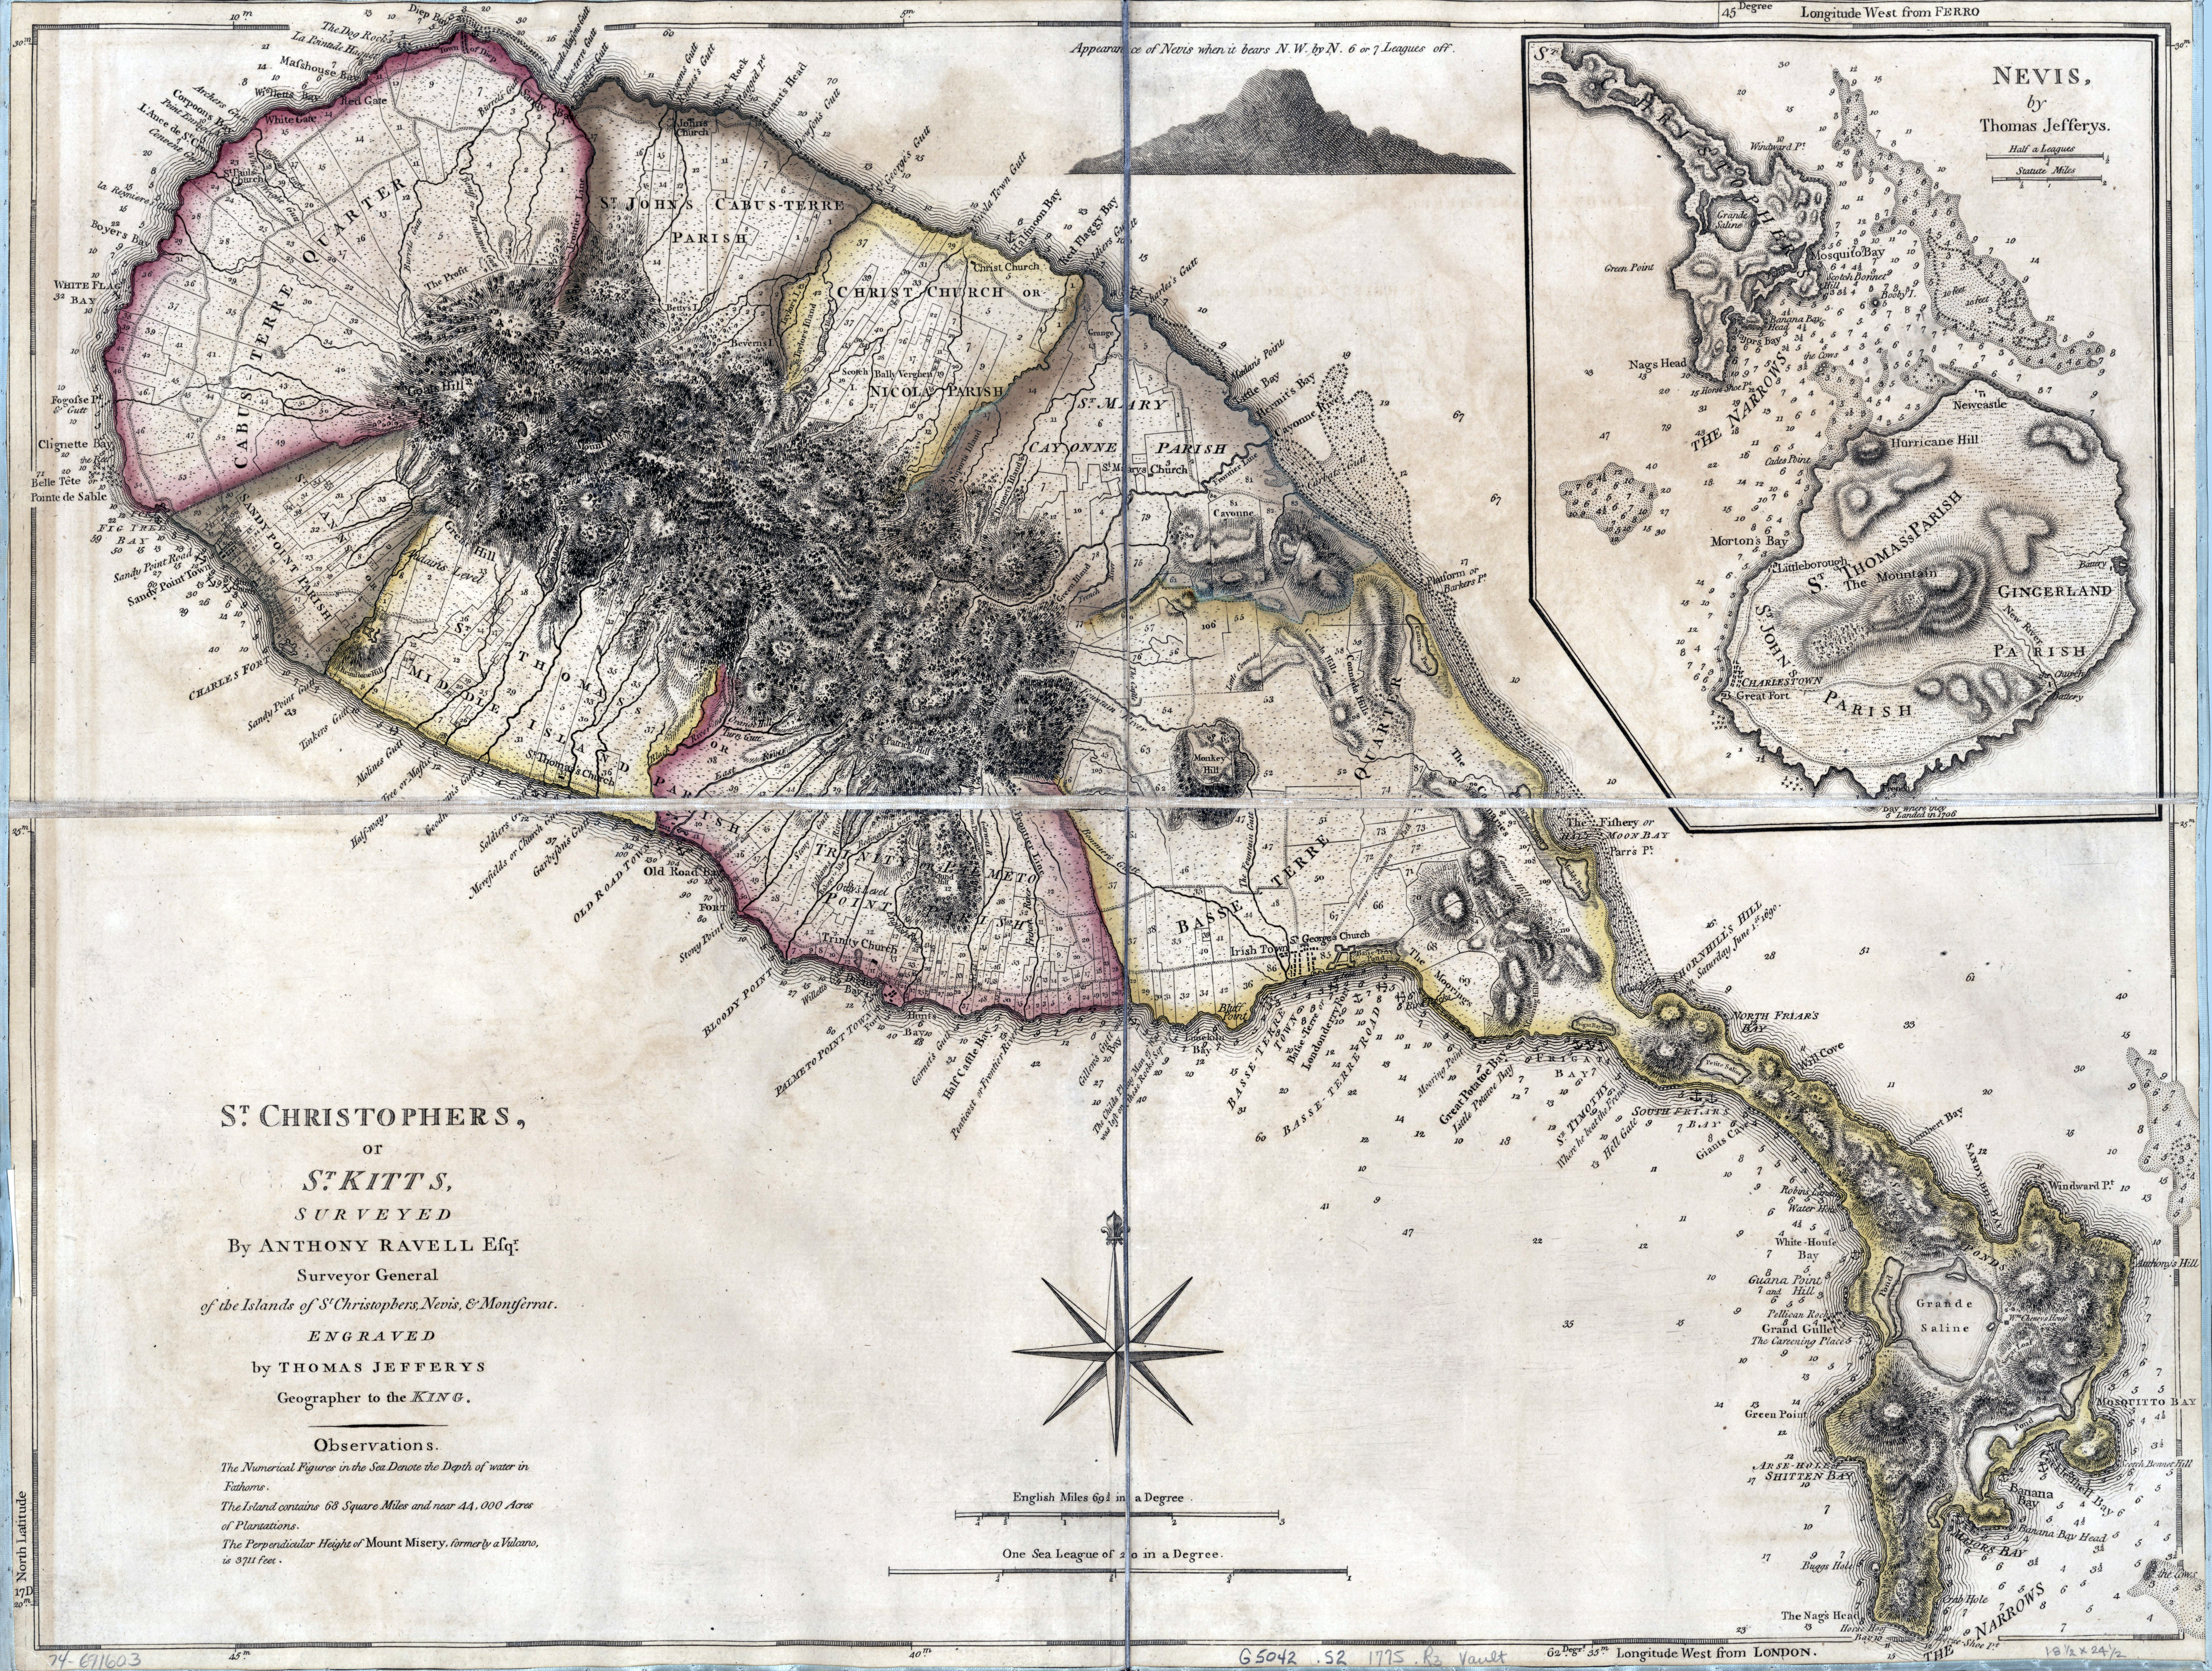 1775 Map of St Kitts and Nevis, clearly showing partitioning of land into plantations.